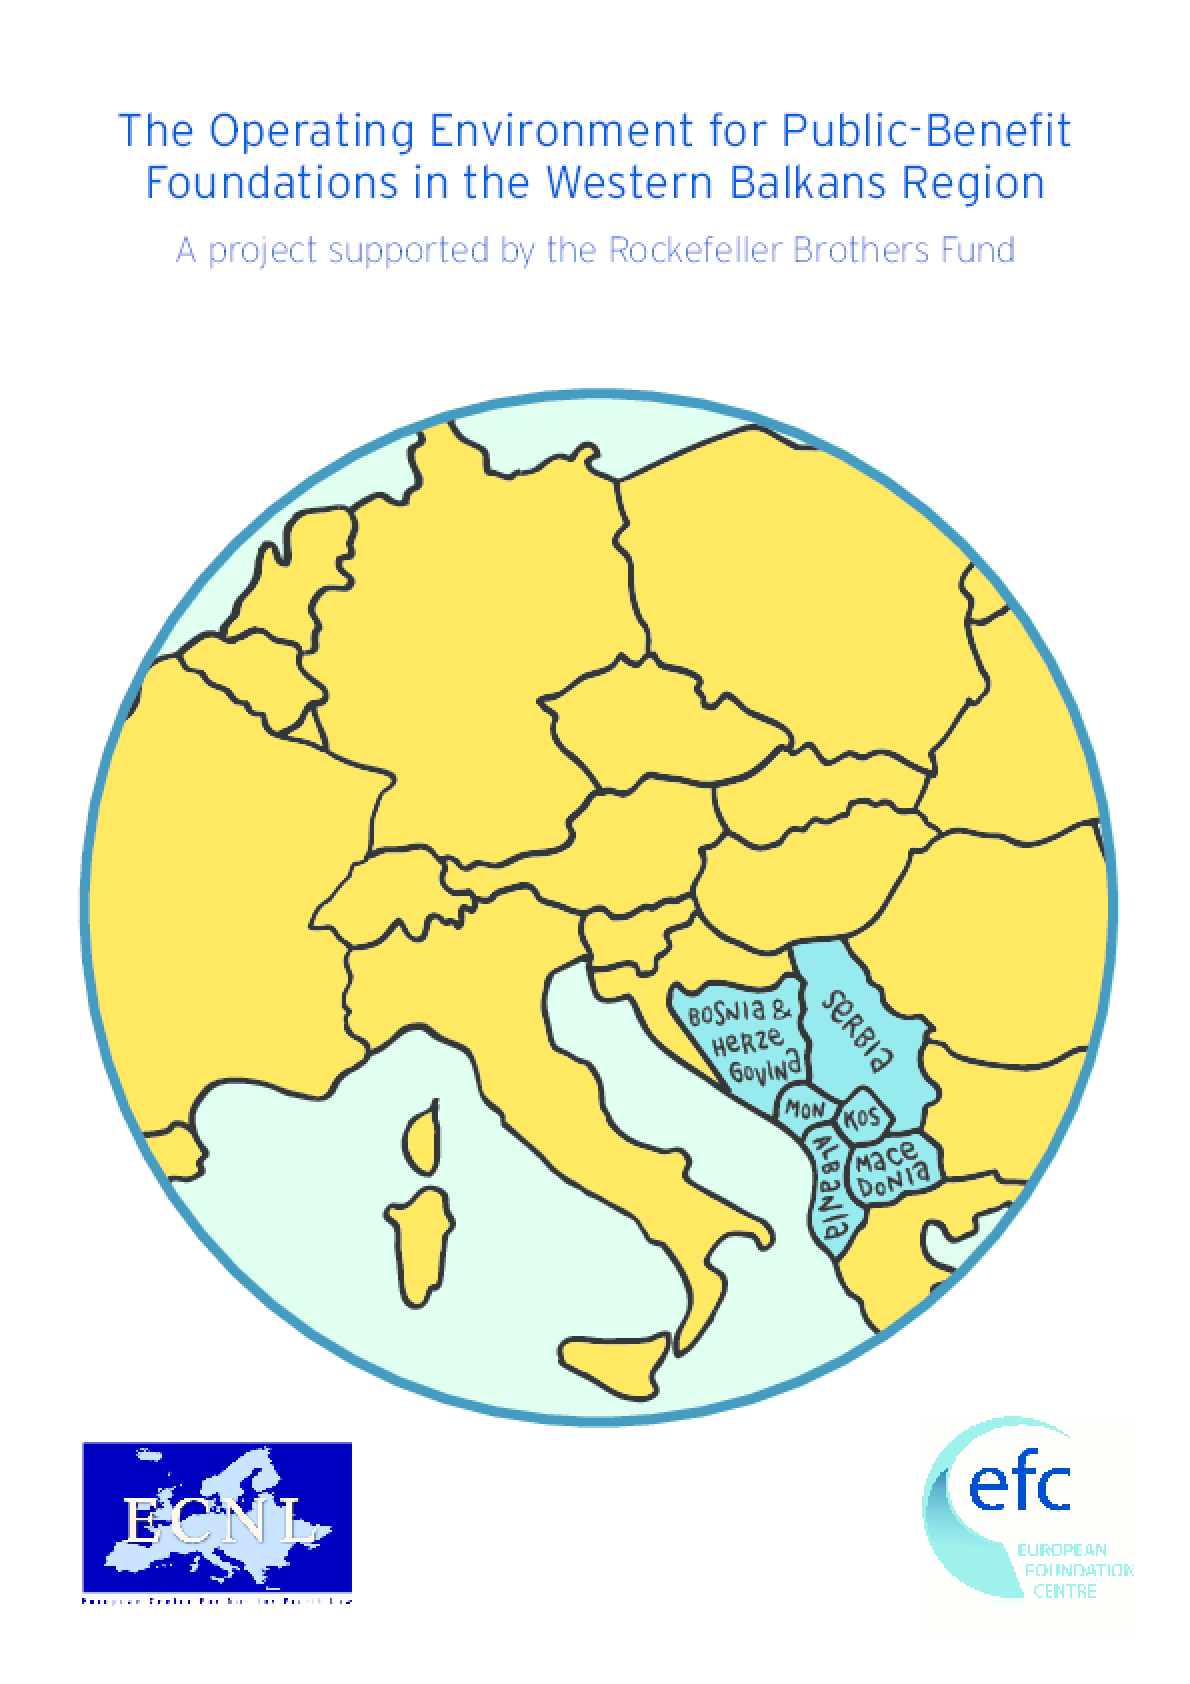 The Operating Environment for Public-Benefit Foundations in the Western Balkans Region : A Project Supported by the Rockefeller Brothers Fund